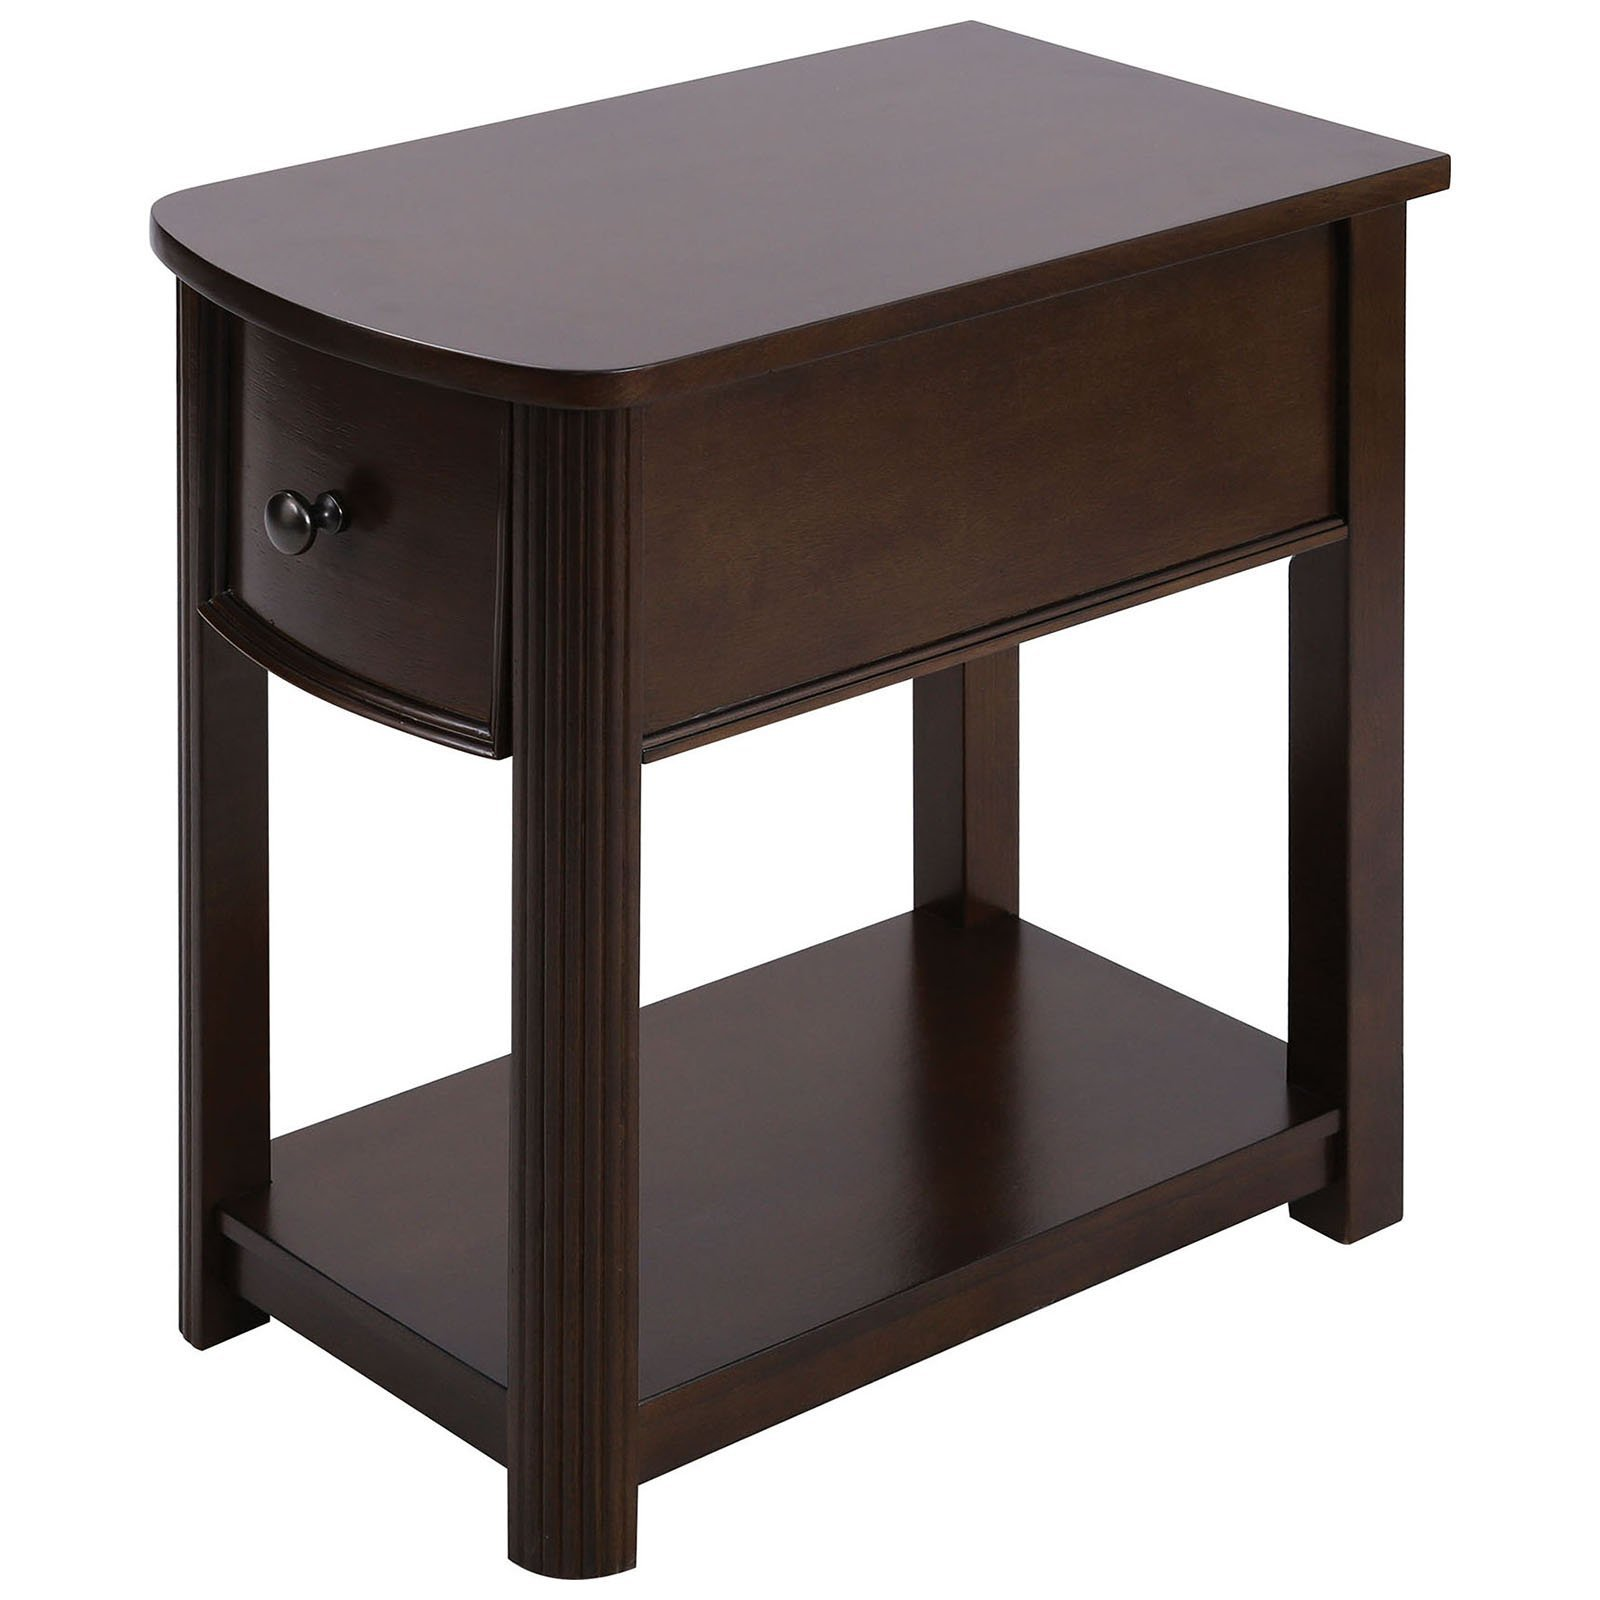 accent tables reaburn dark cherry traditional fratantoni lifestyles wood table long foyer narrow sofa console high end cocktail target patio coffee ikea slim storage modern wooden